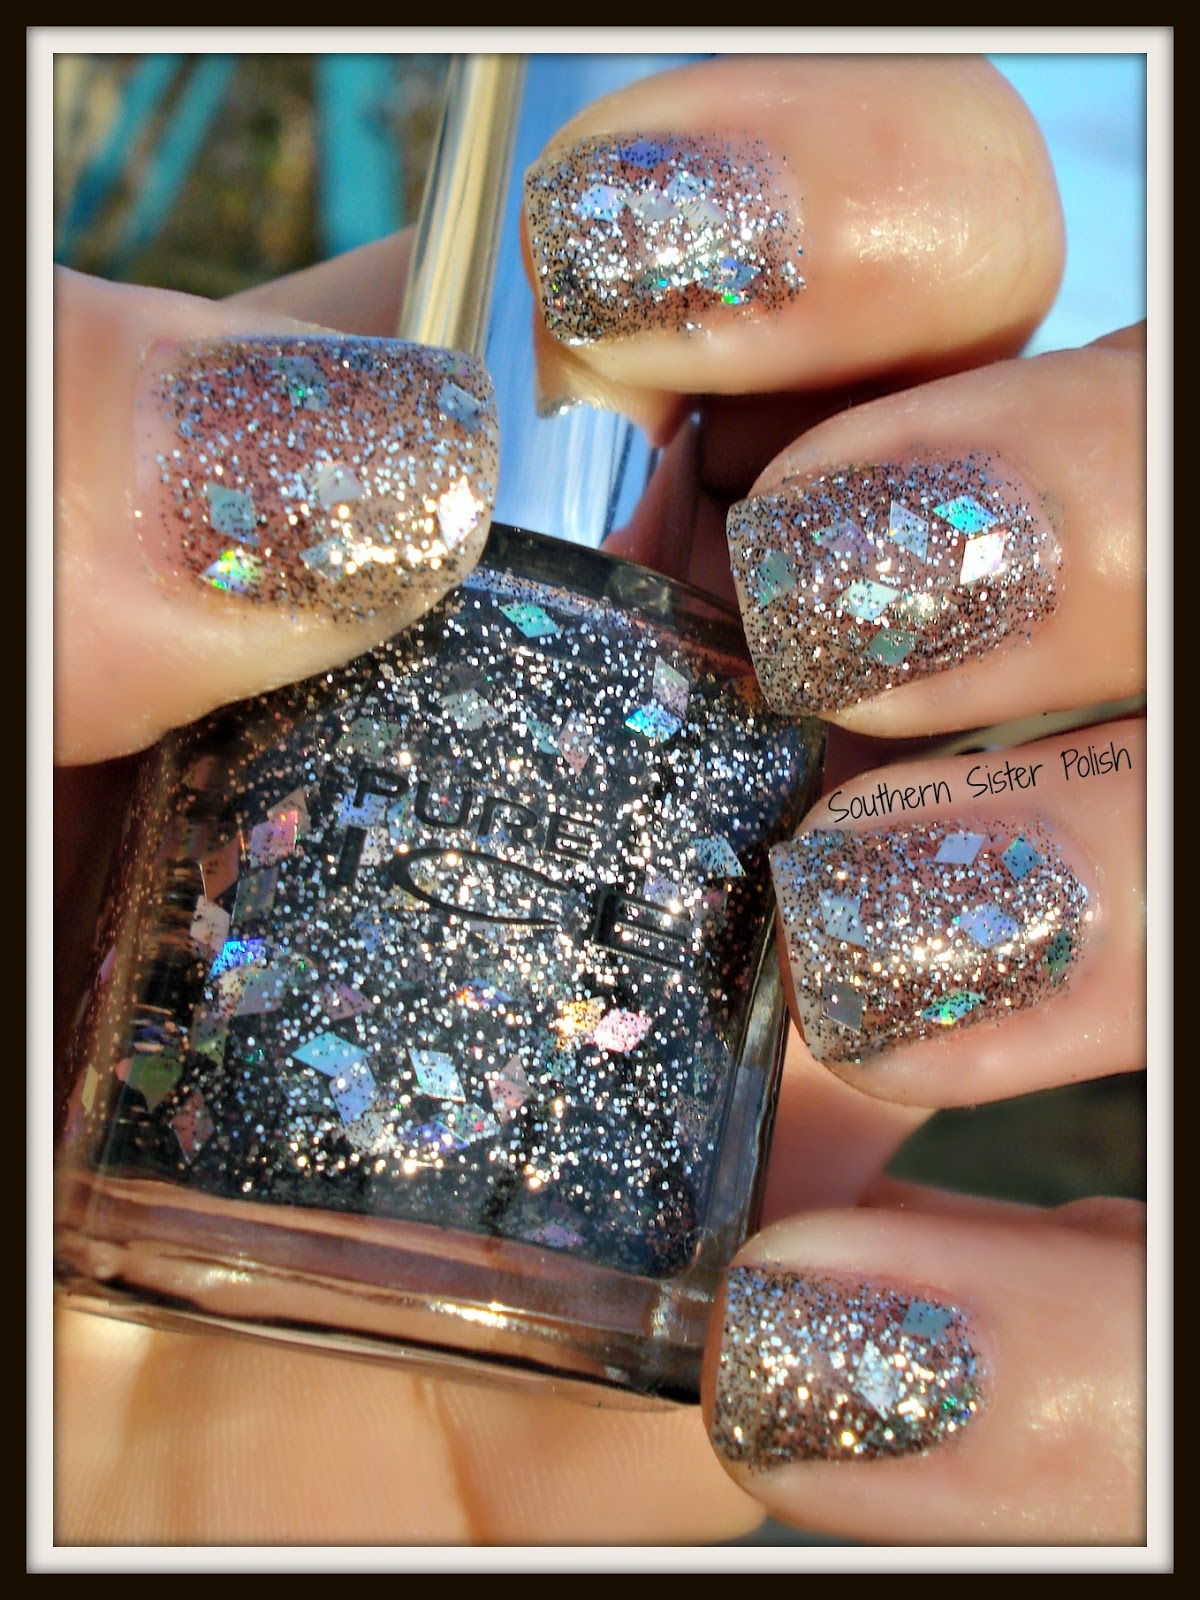 Southern sister polish pure ice diamond couture review saturday december 8 2012 prinsesfo Images